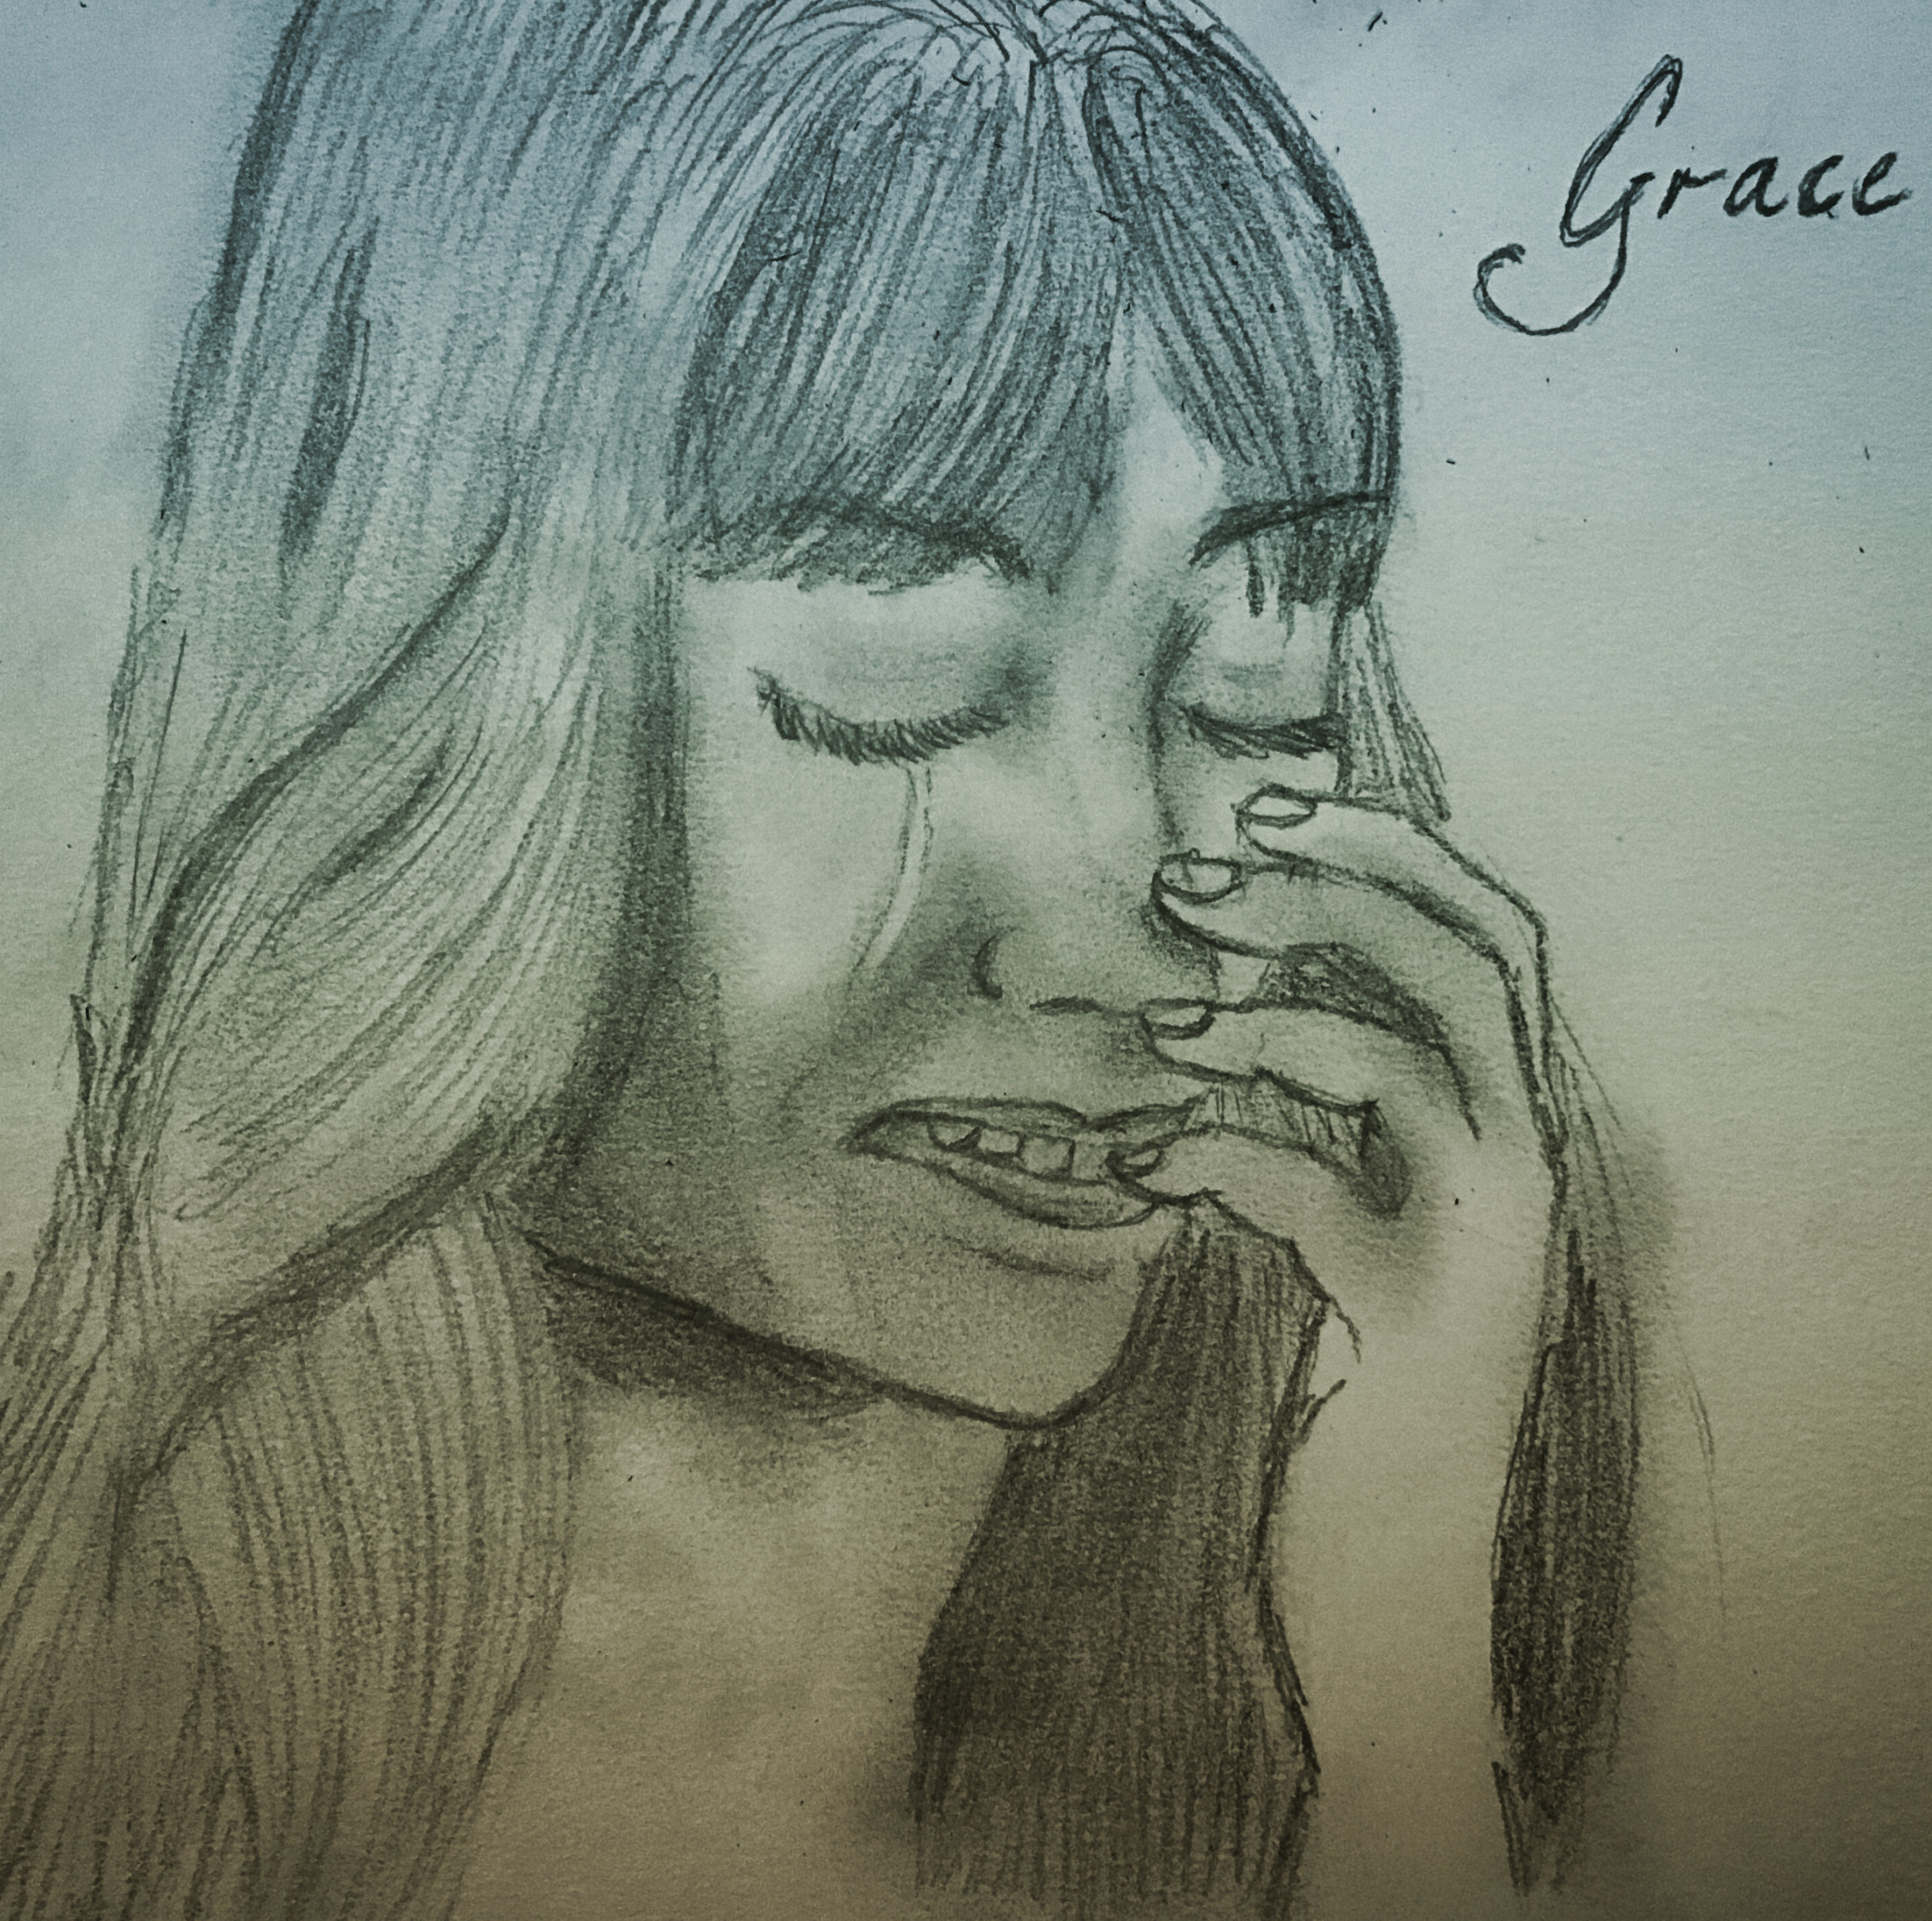 Stetch drawn of character, Grace, crying. Dark hair and fringe. Picture has blue tint